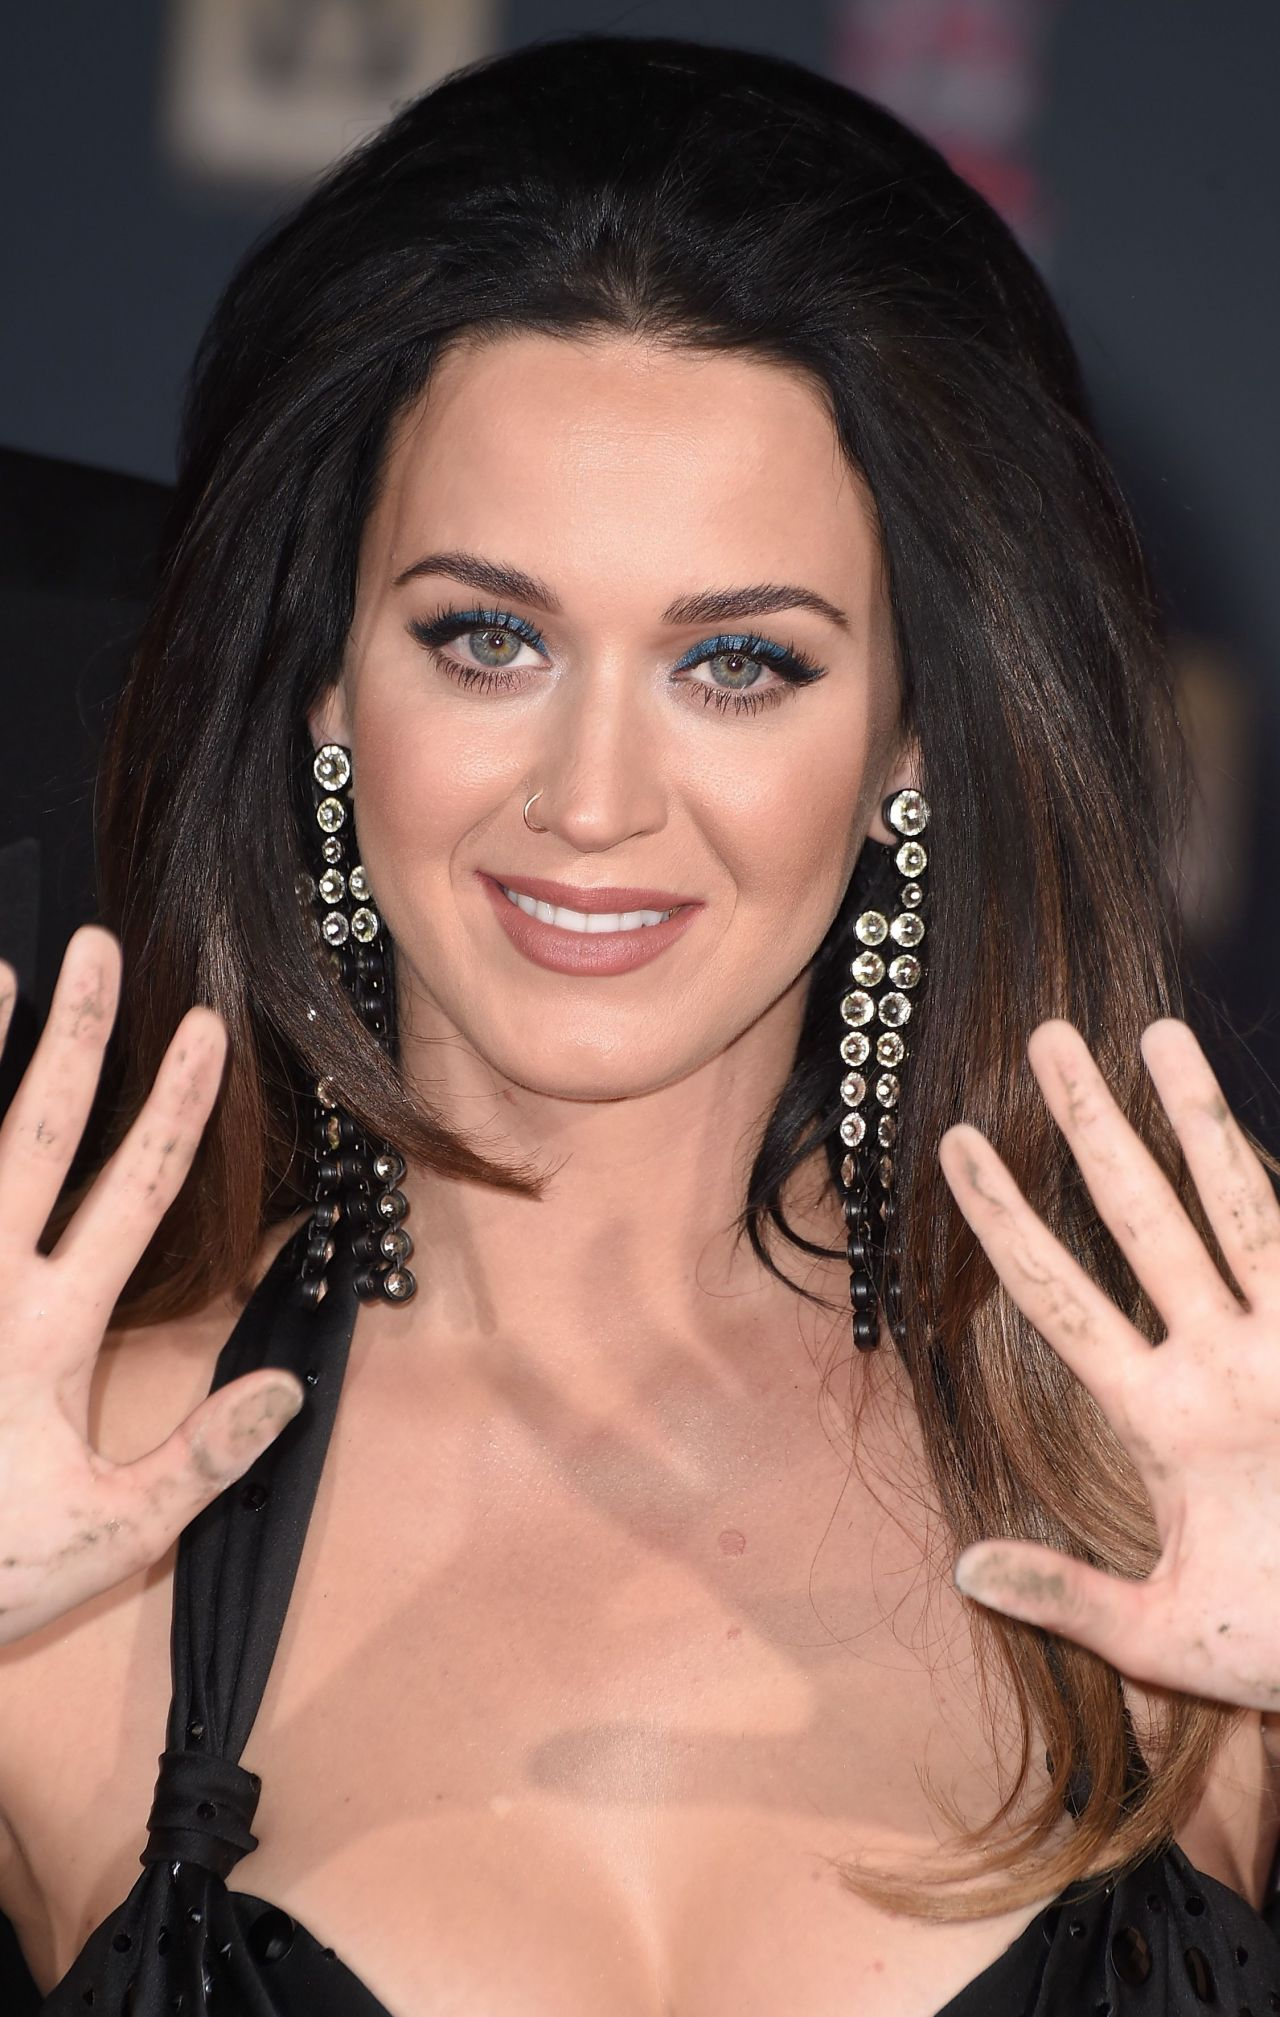 katy perry - photo #21